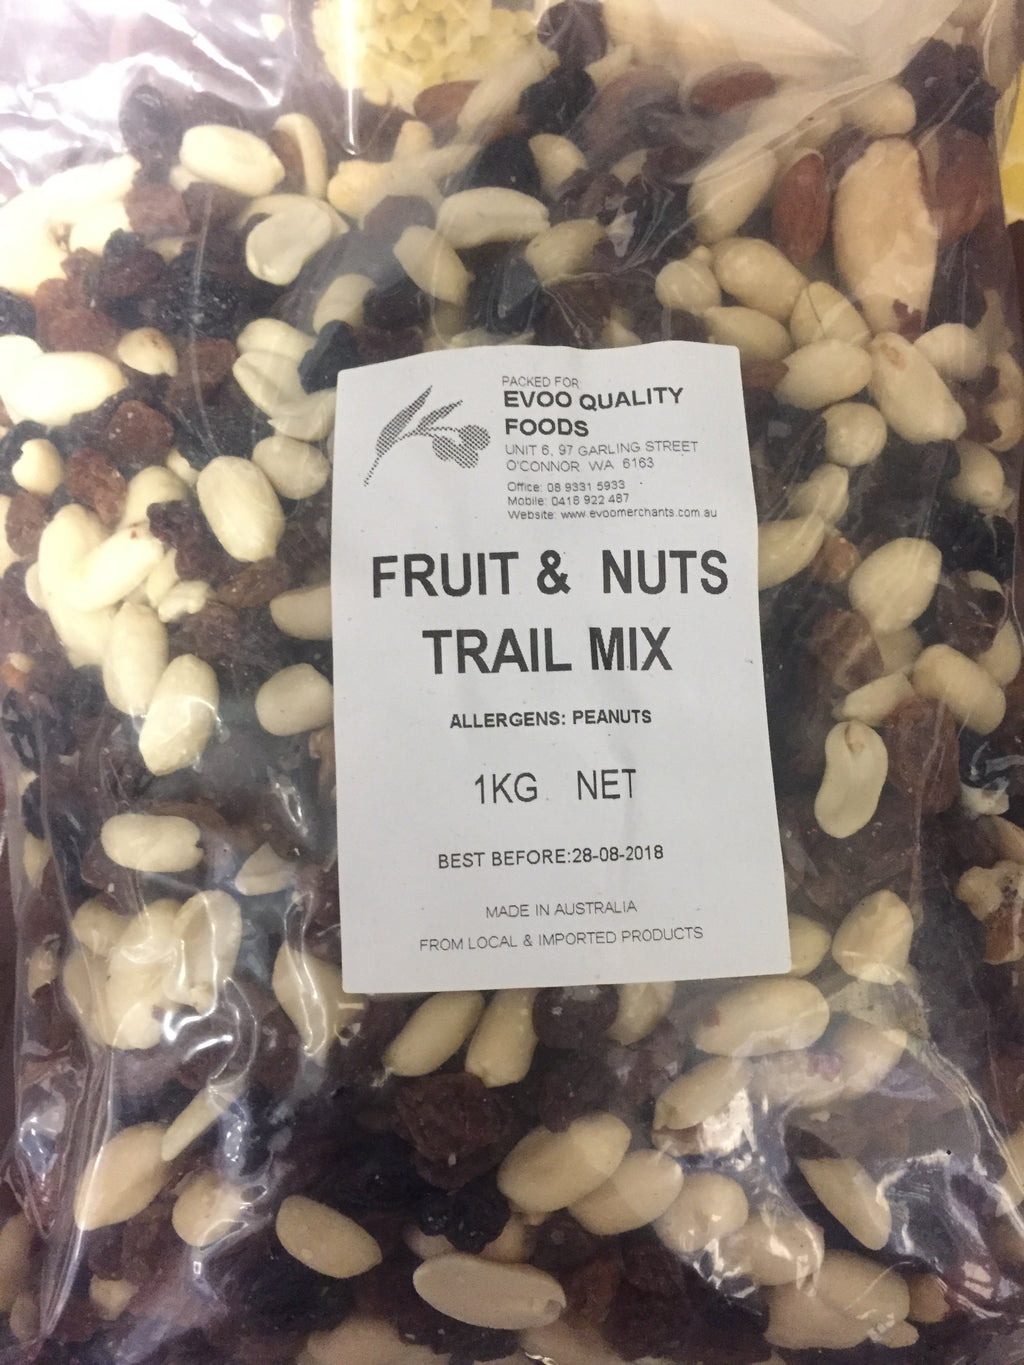 Fruit & Nut Mix Trail Mix 1kg Bag